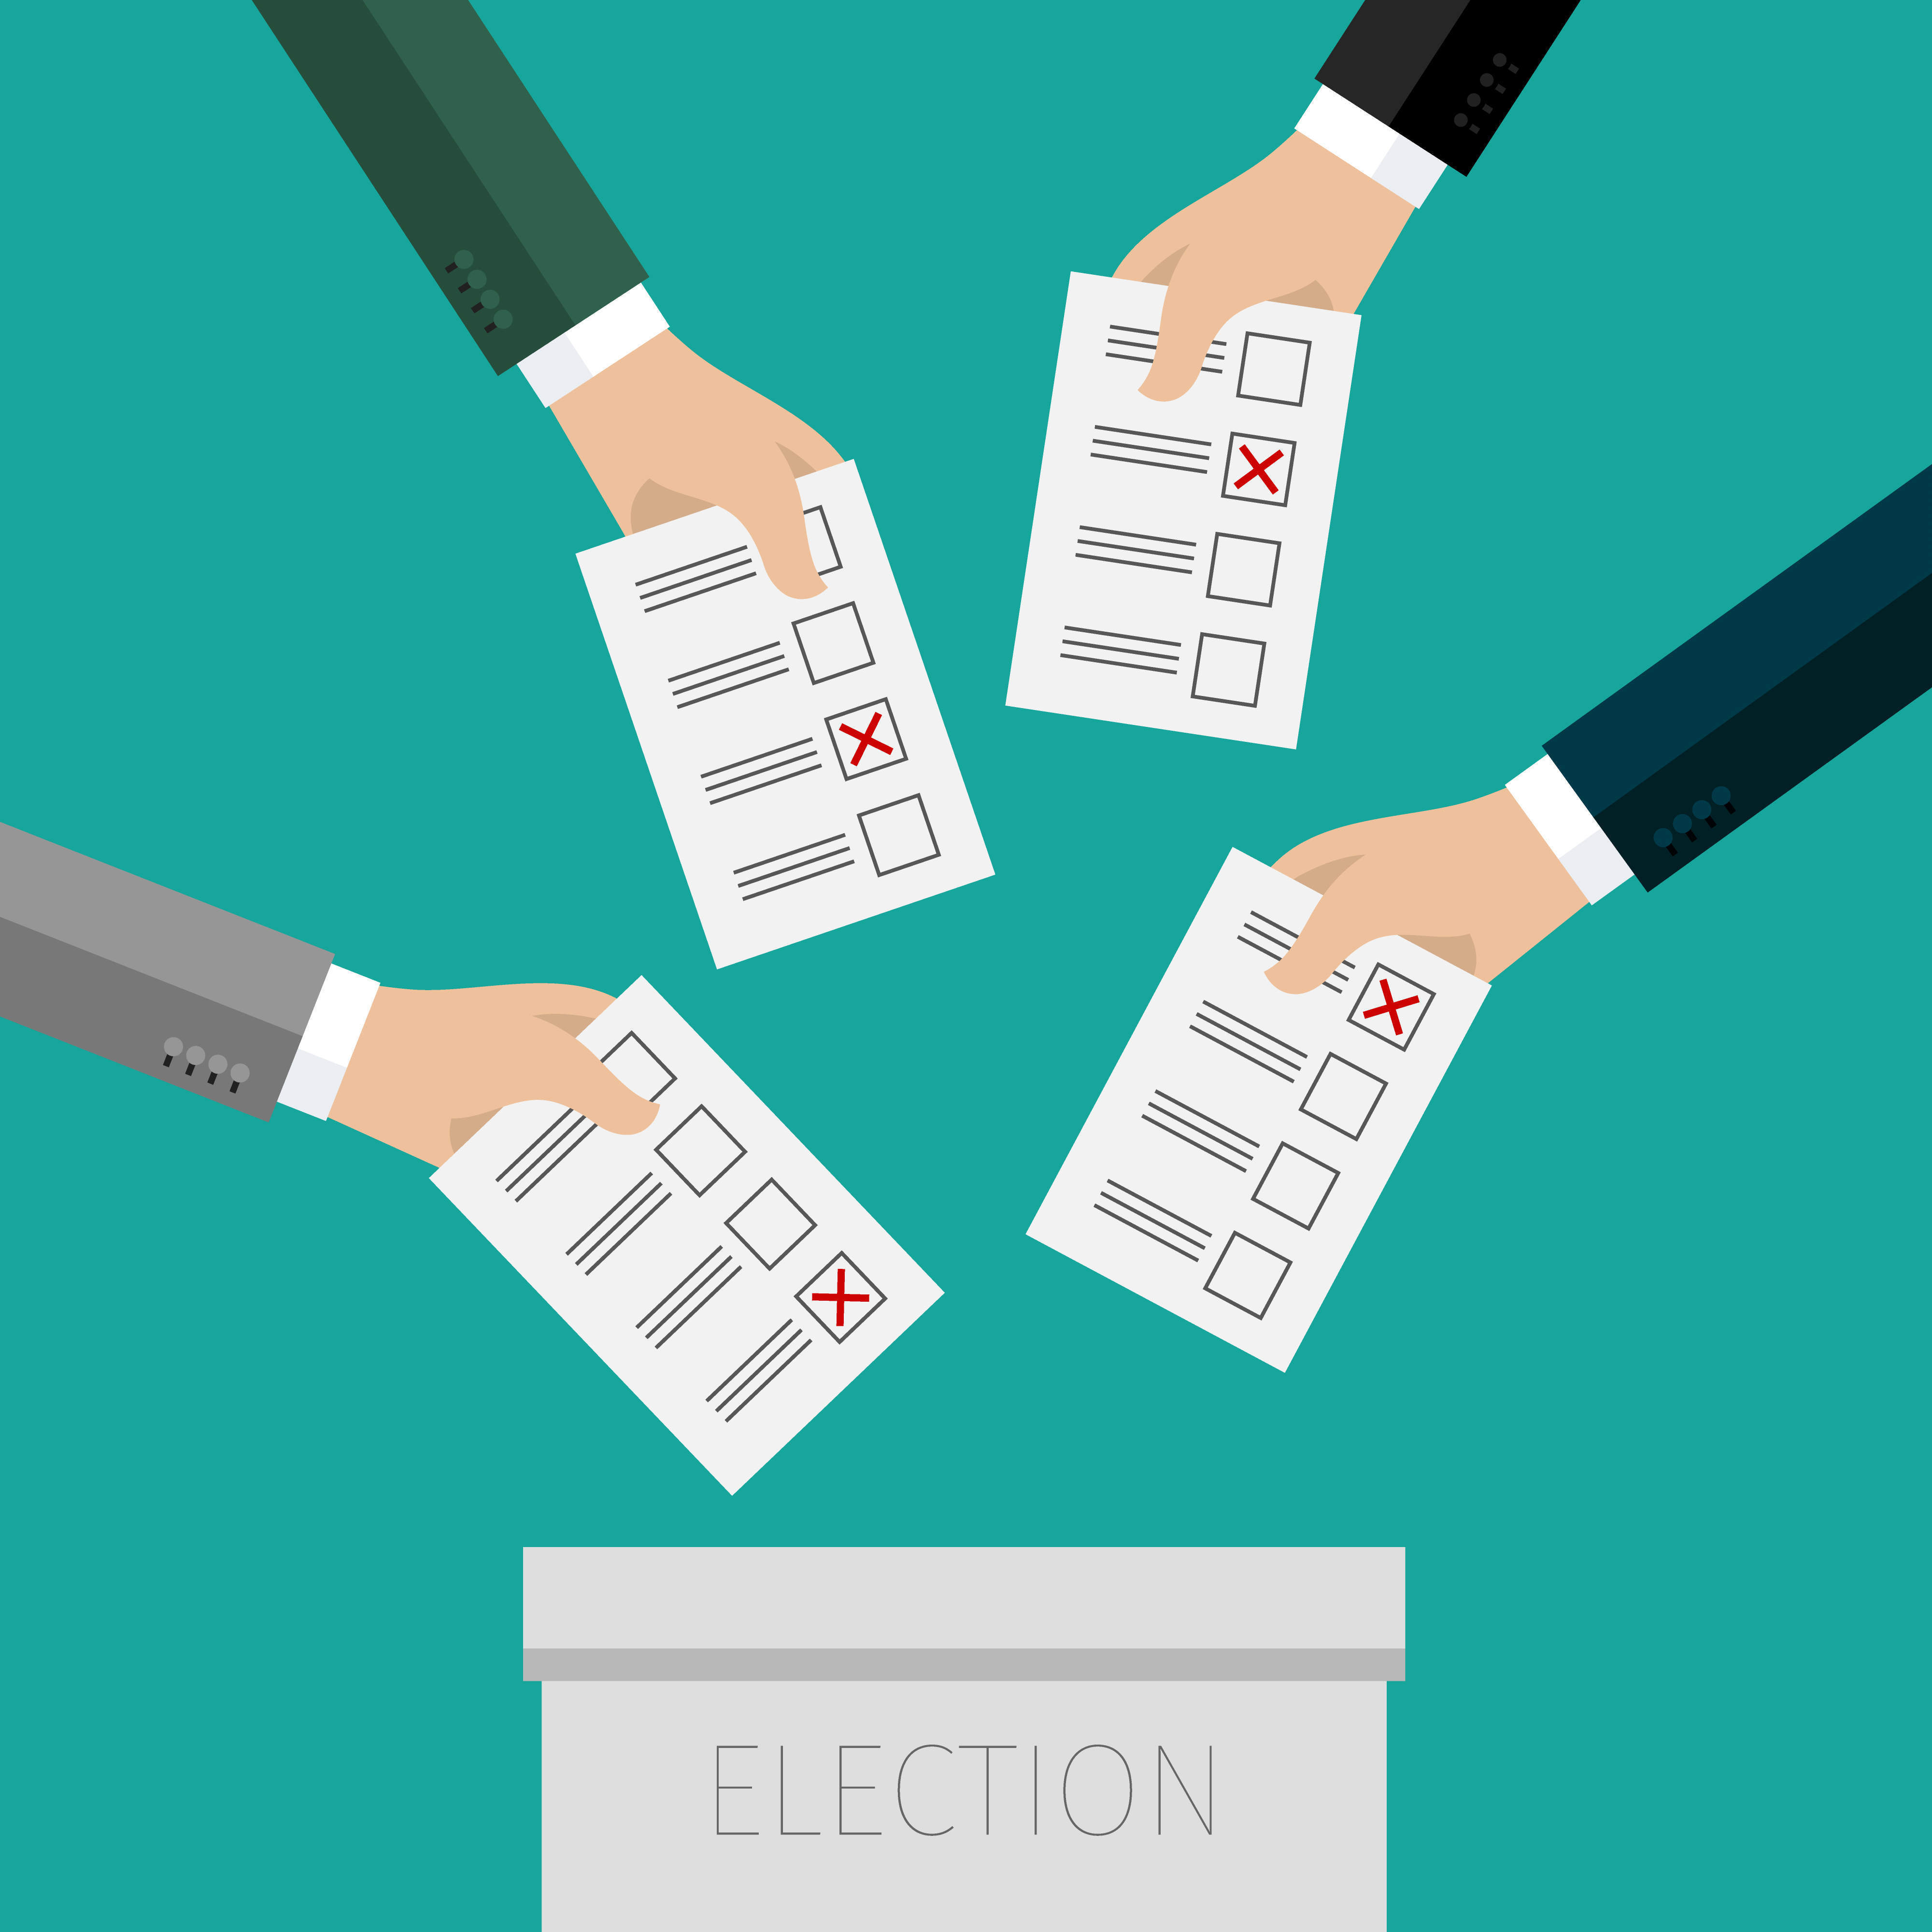 Could blockchain voting eliminate election fraud?